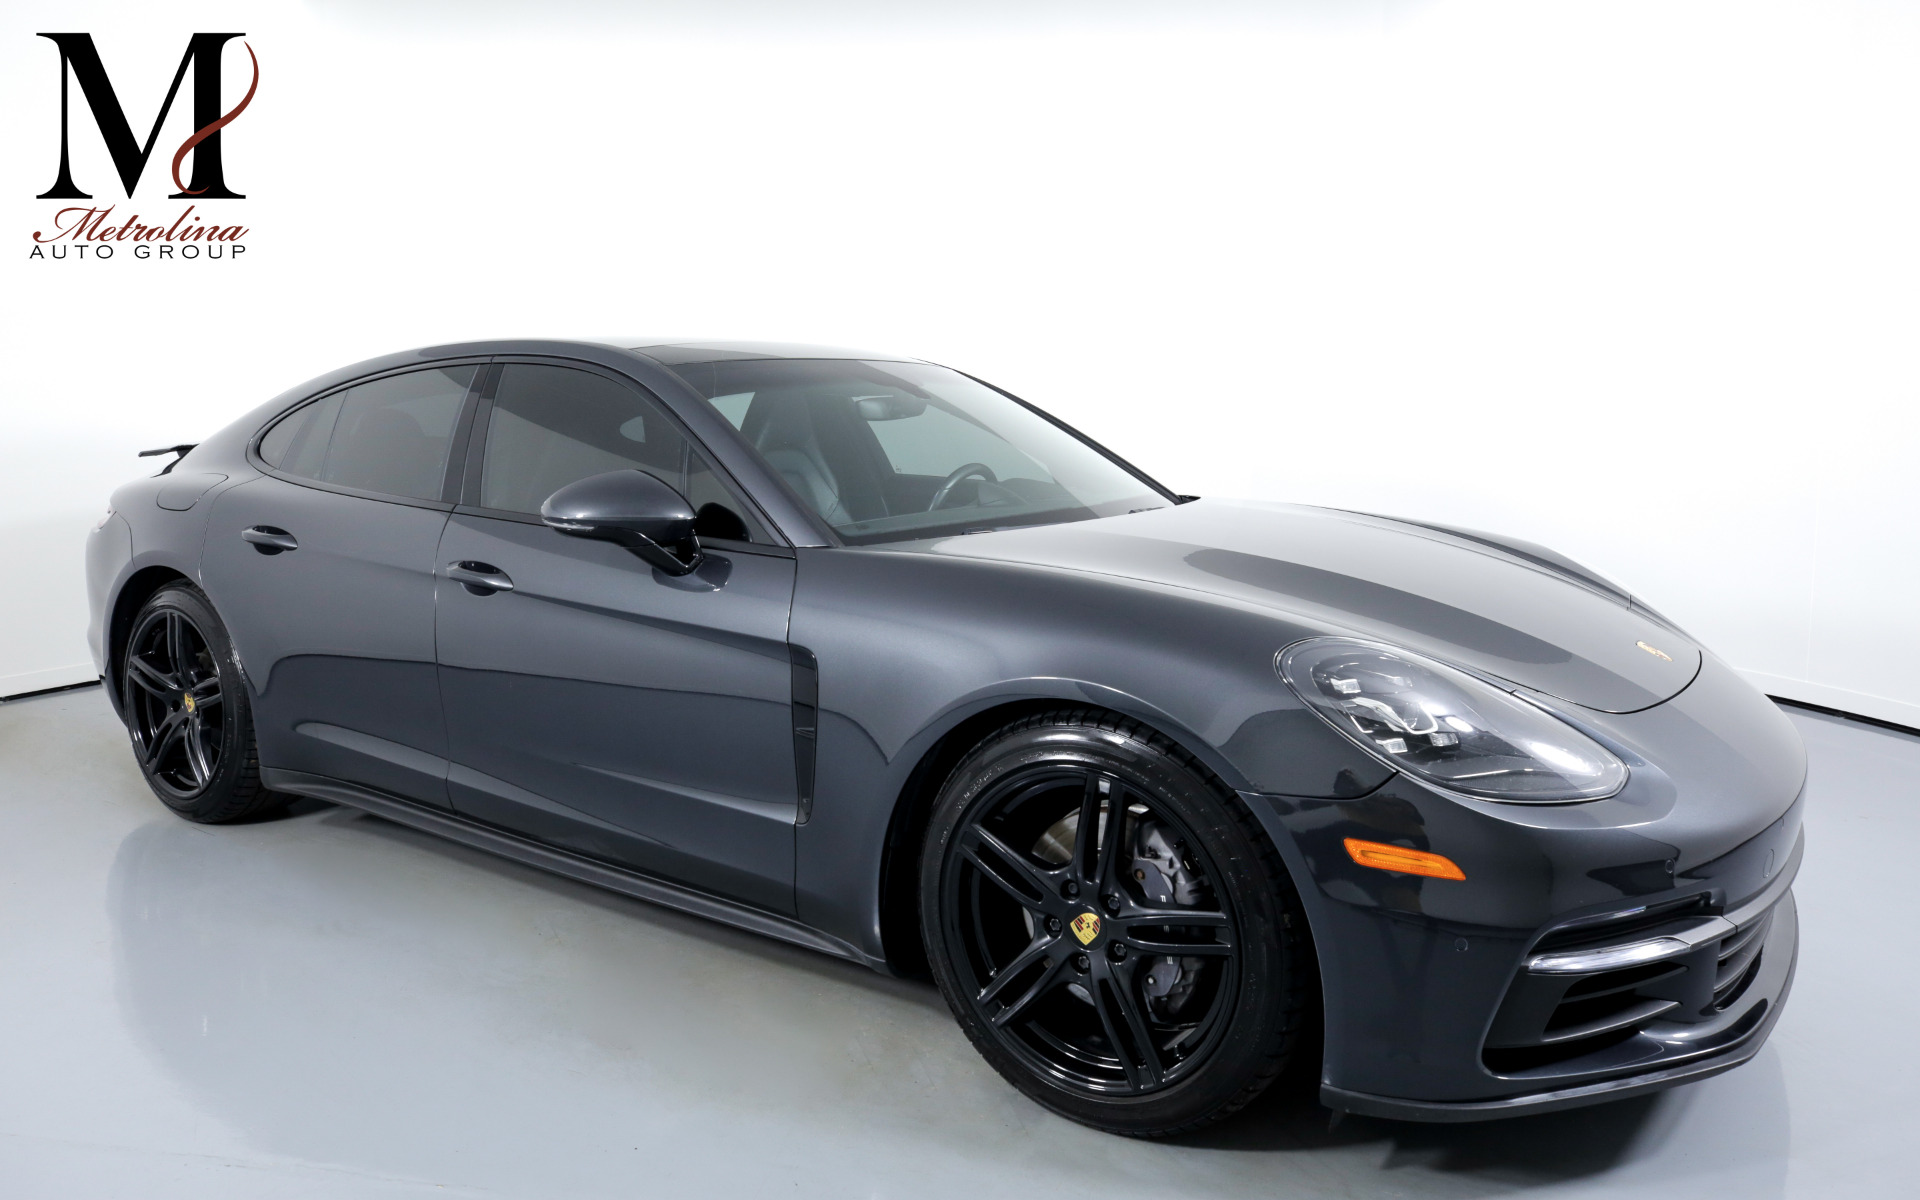 Used 2017 Porsche Panamera for sale $66,996 at Metrolina Auto Group in Charlotte NC 28217 - 1